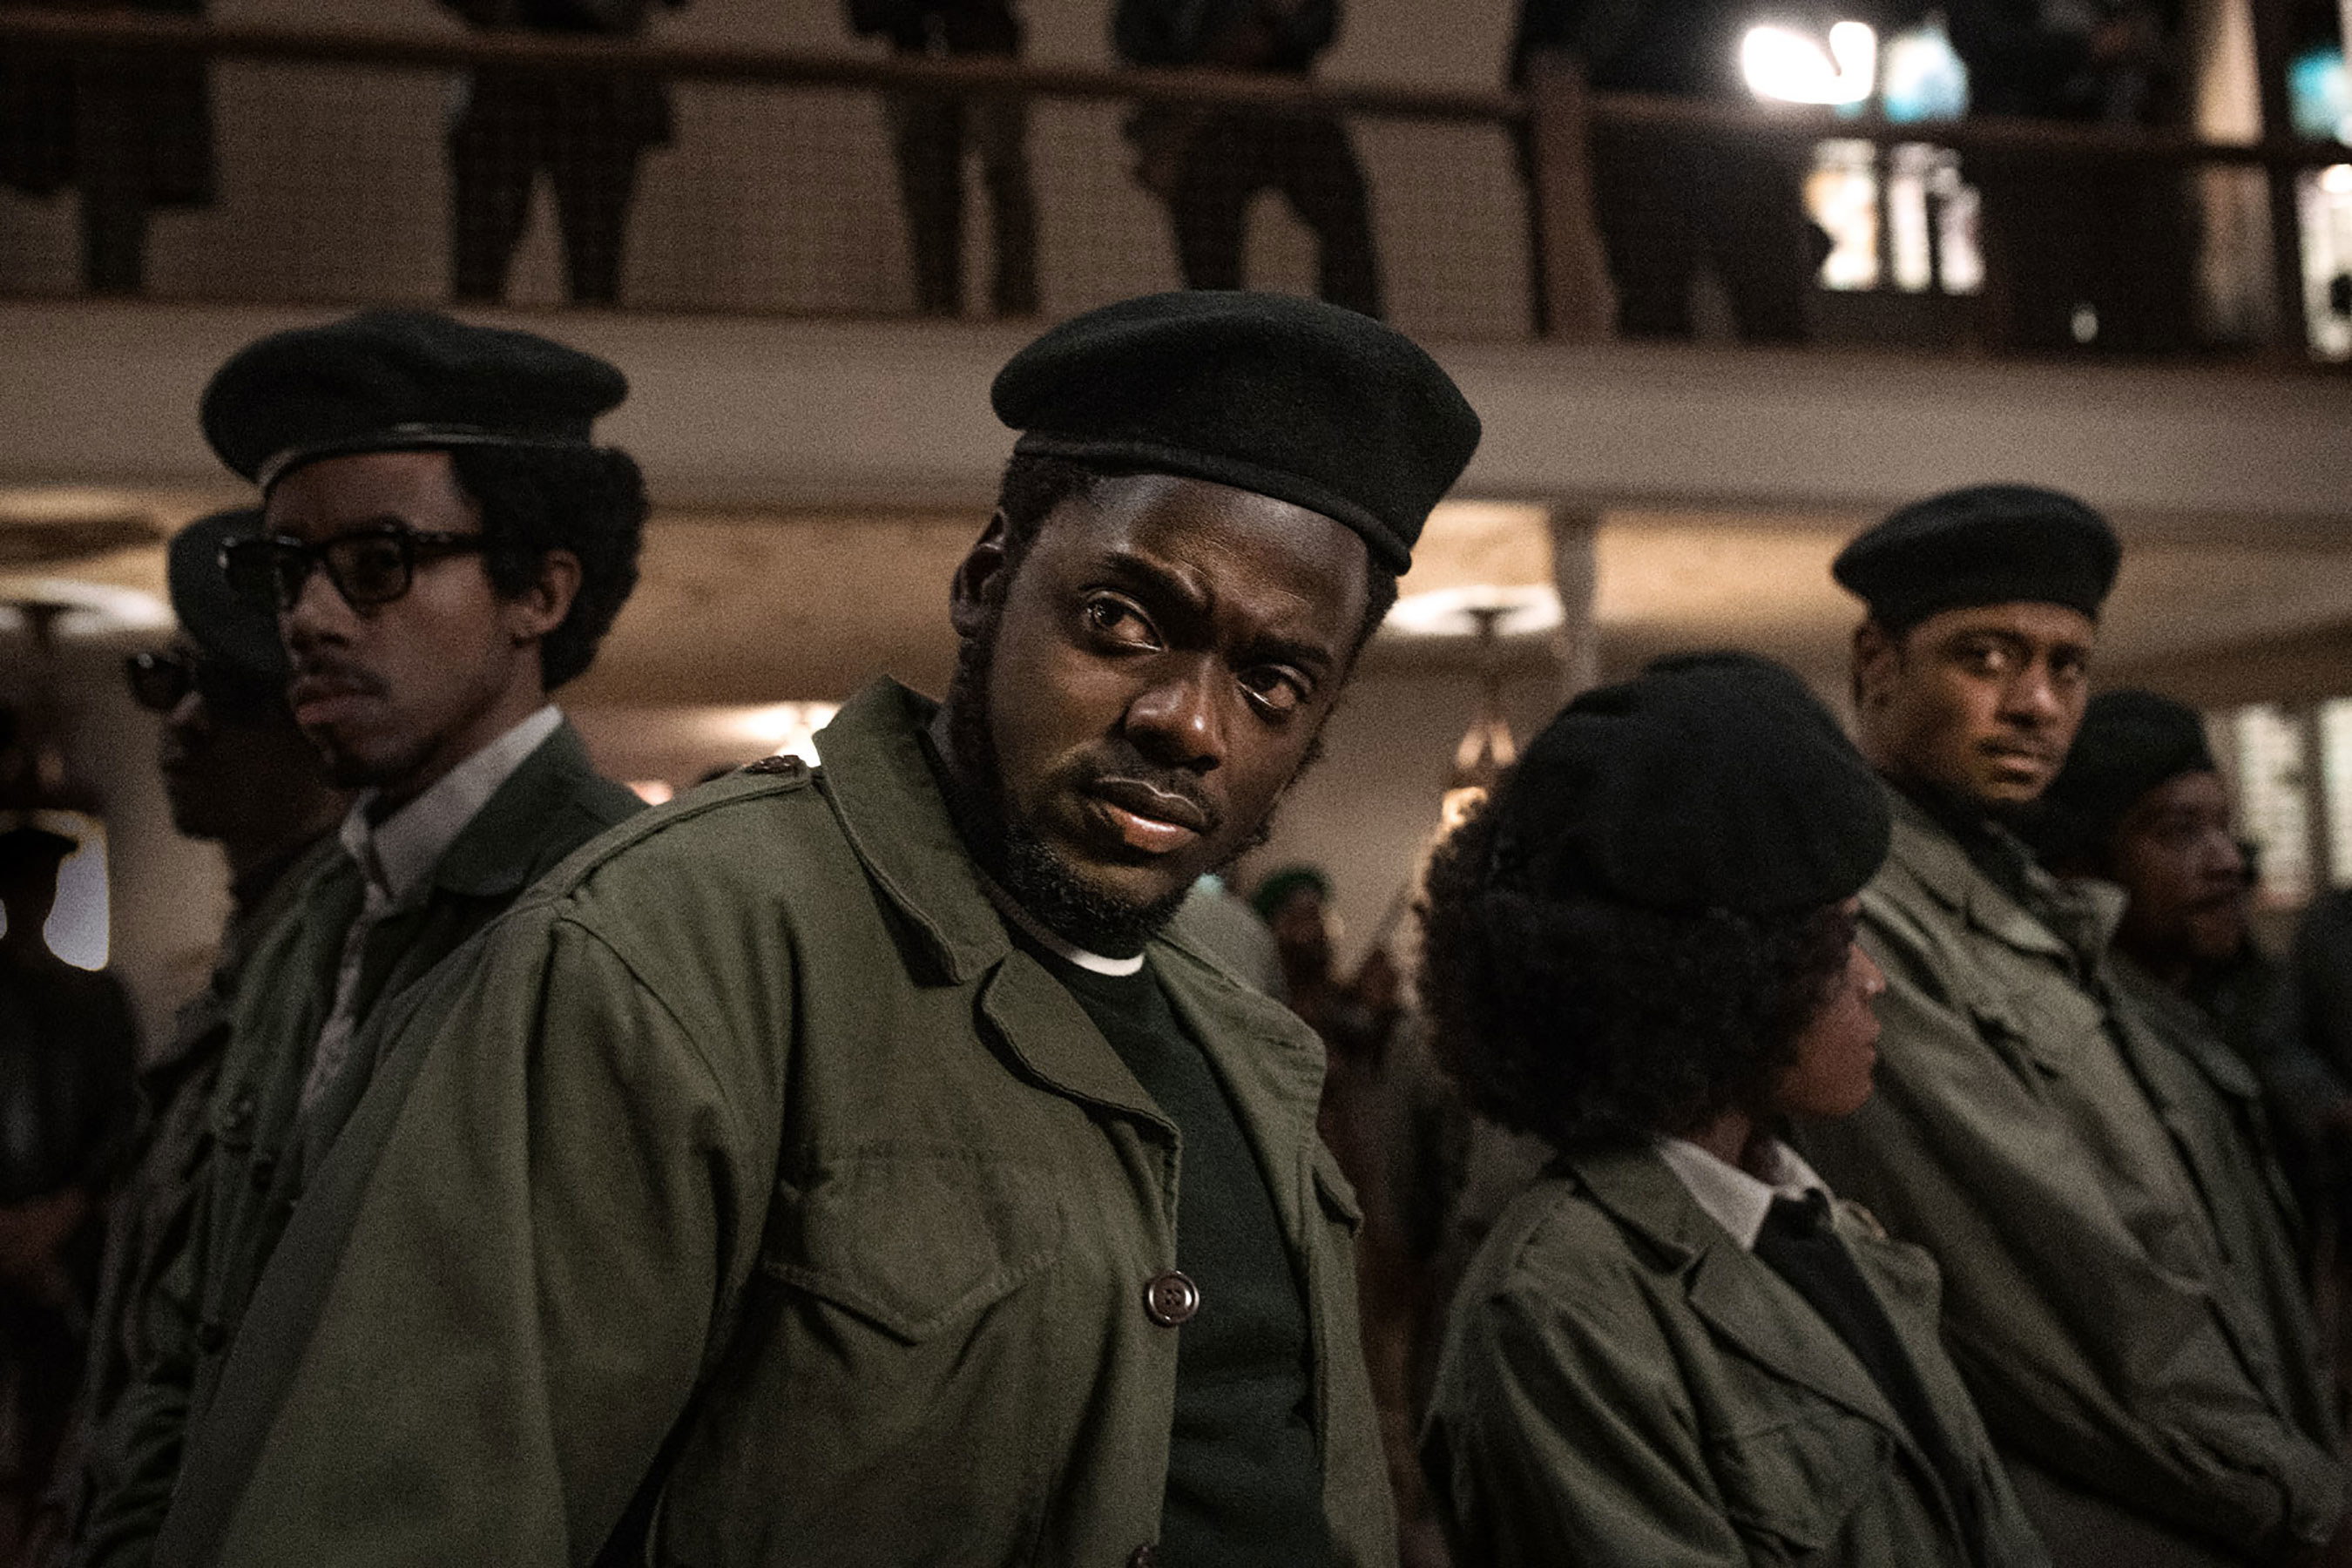 Fred Hampton is looking defensively with his comrades